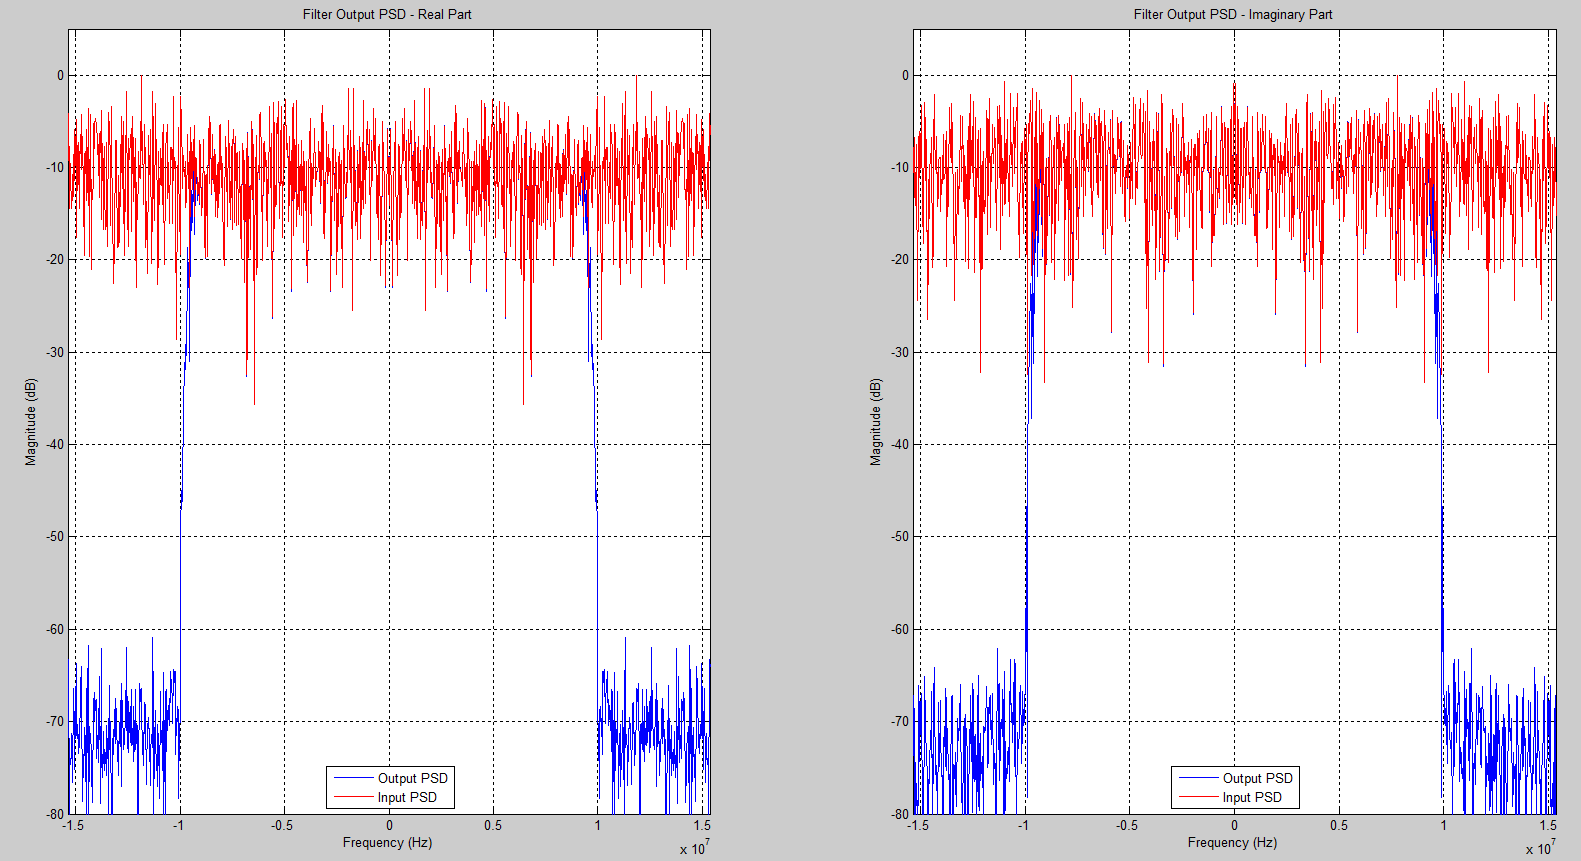 Power Spectral Density Before and After Filtering